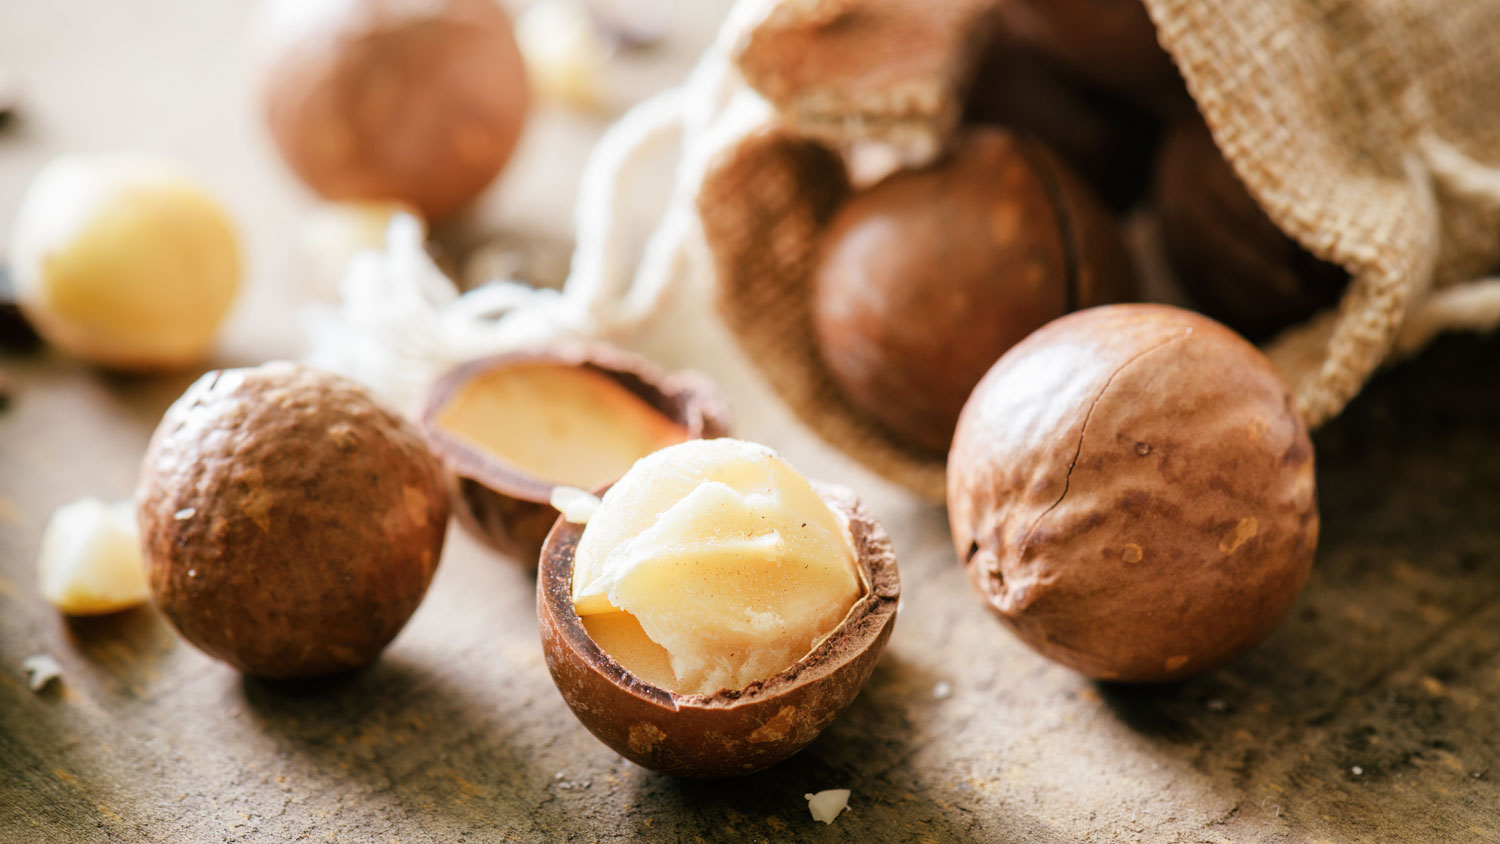 fda update on macadamia nuts